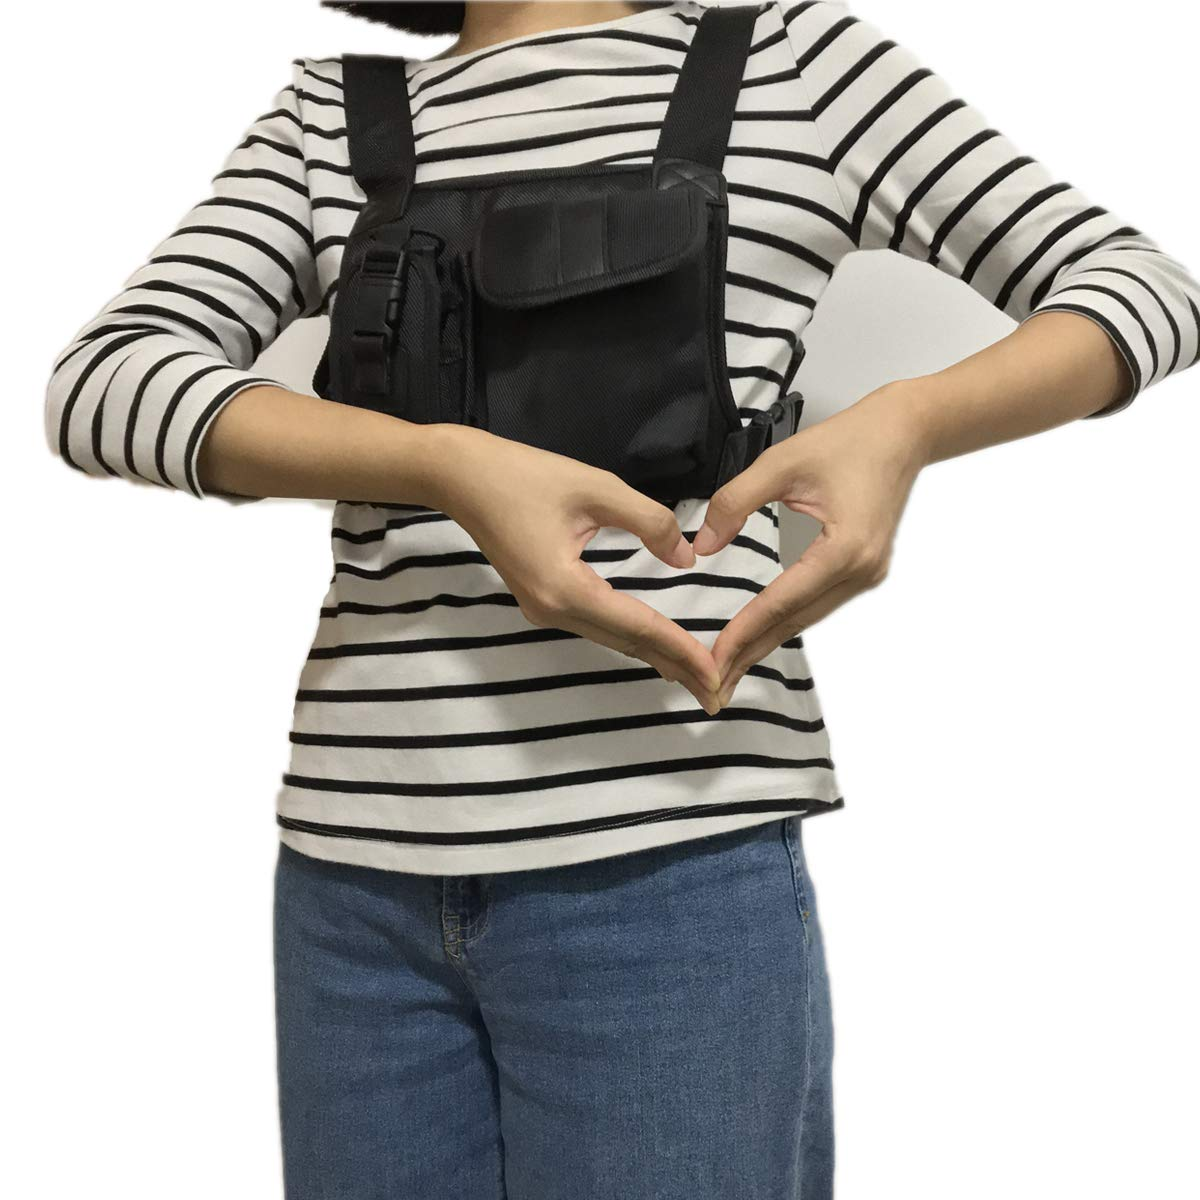 BLVL Radio Chest Harness Chest Front Pack Pouch Holster Vest Rig Holster Two Way Radio Walkie Talkie